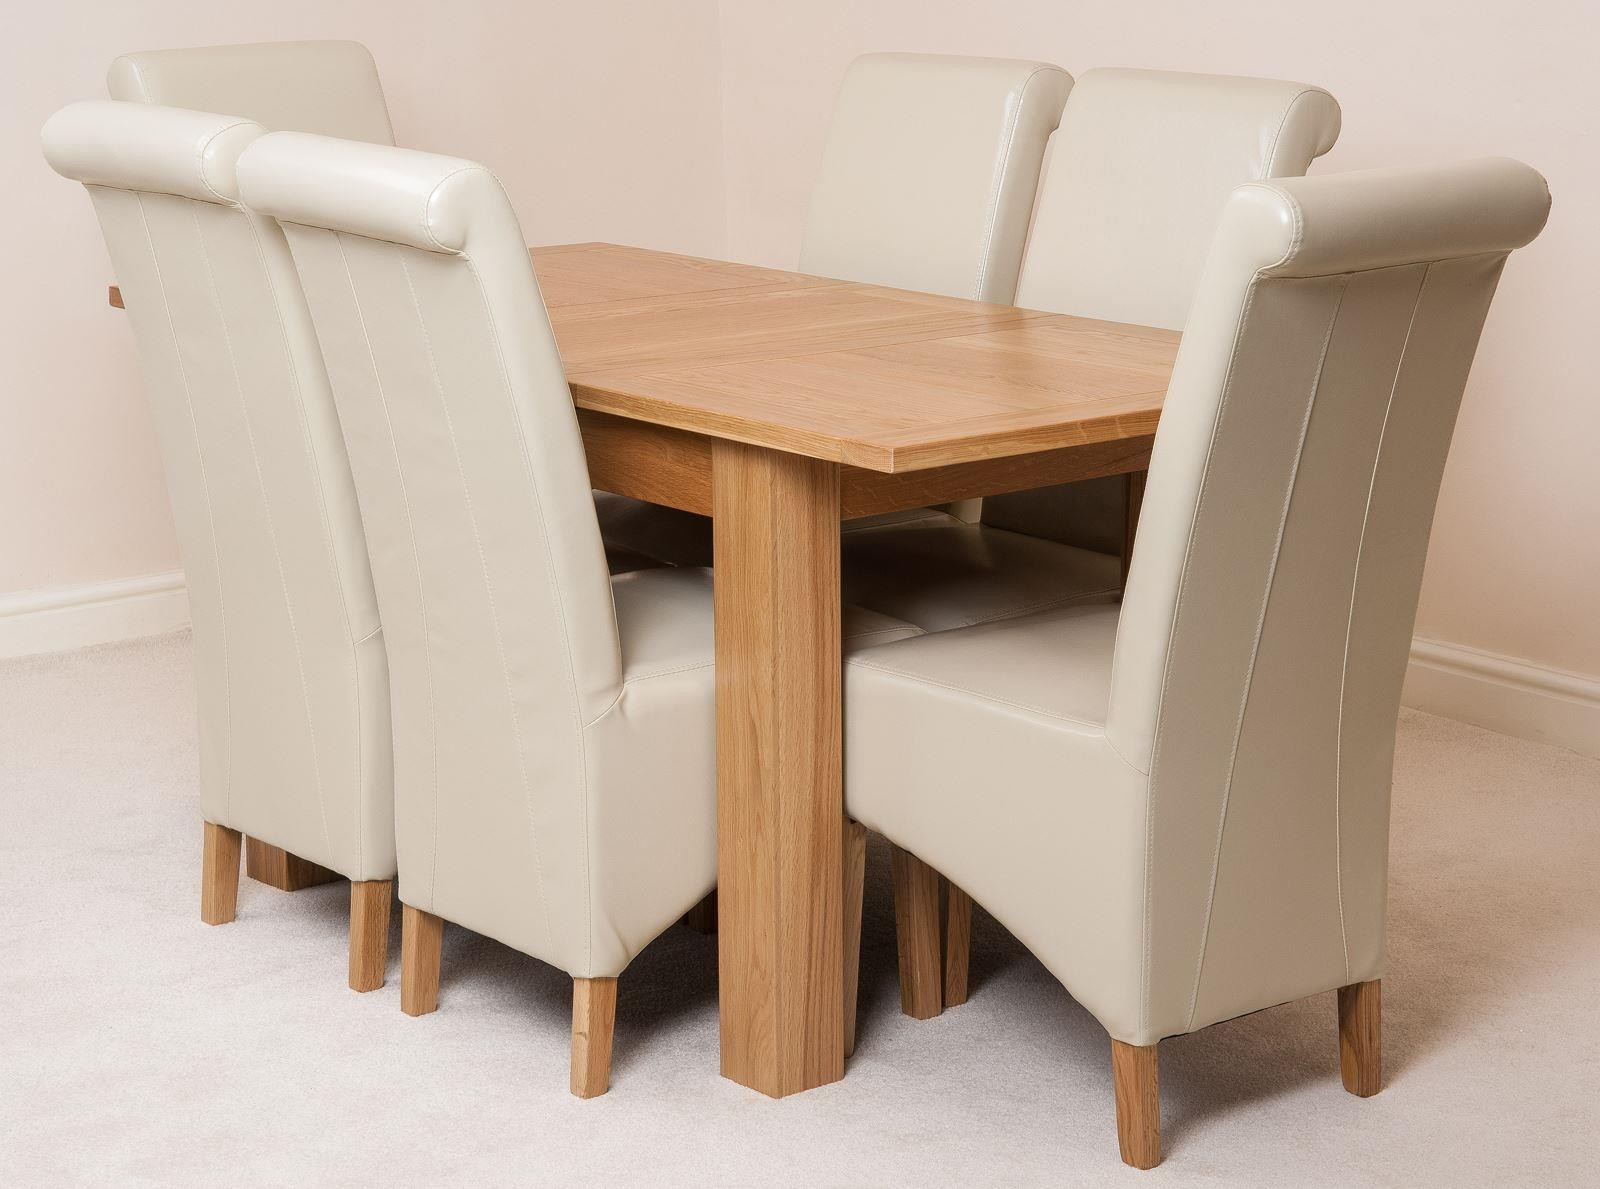 Hampton Extending Rustic Oak Dining Table With 6 Burgundy Pertaining To Best And Newest Hetton 38'' Dining Tables (View 15 of 15)